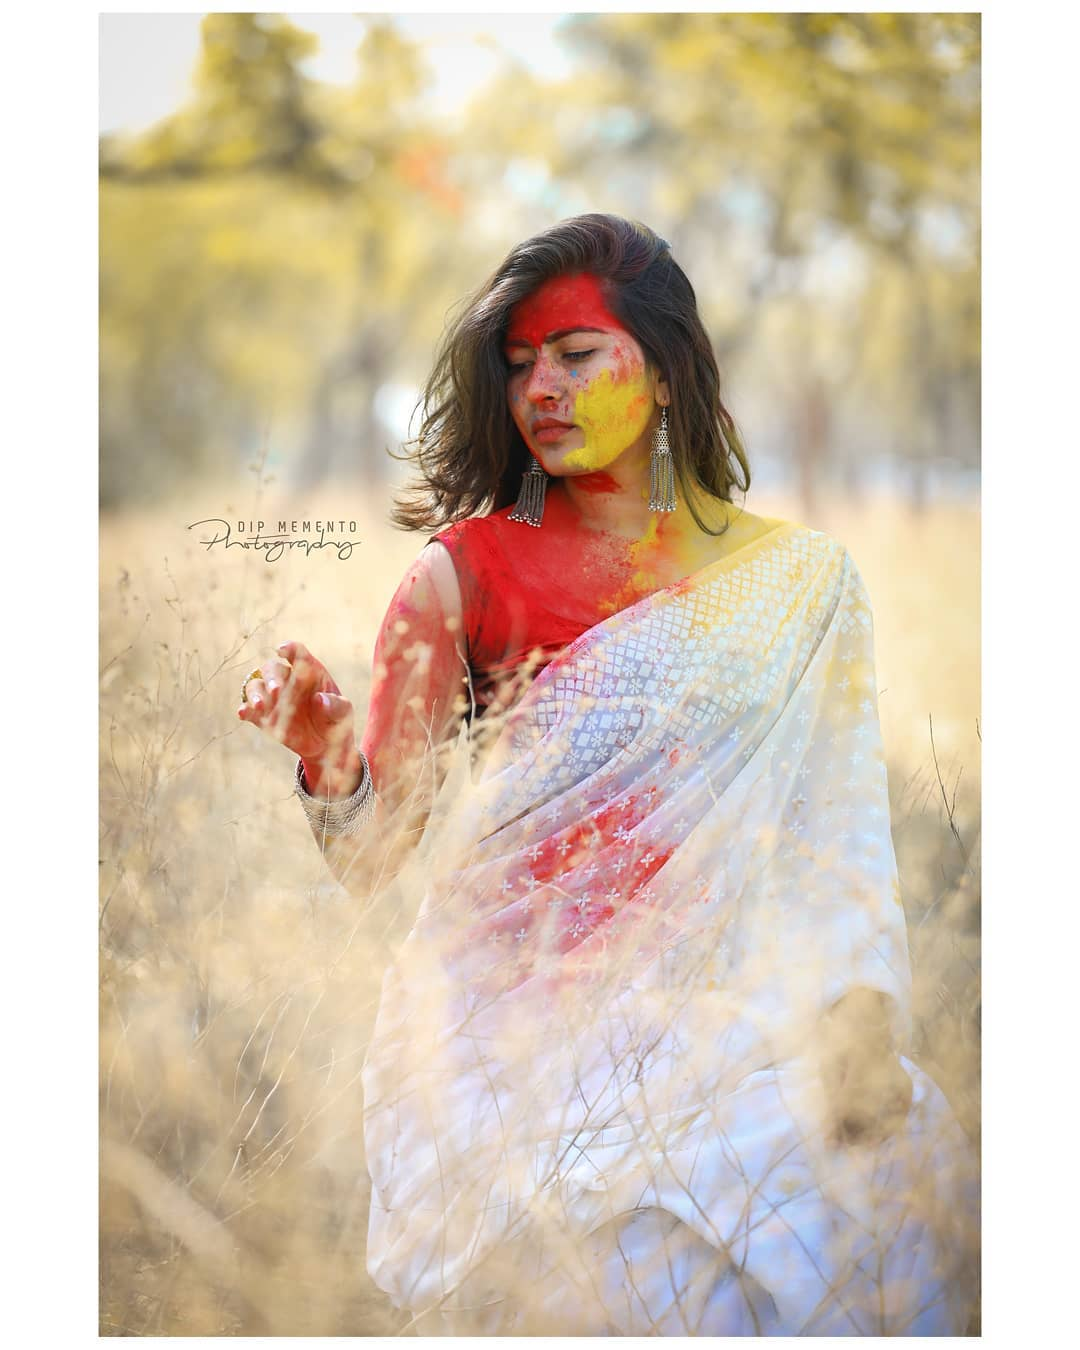 Dip Memento Photography,  Colors,, holiconcept, concept, holishoot, dip_memento_photography, memento_photography, holi, color, holishoot, colursfestival#IndianFestival, indianculturee, indianpictures#ahmedabad, gandhinagar, bloggers, bloggerstyle#bloggerslife, indianblogger, indiaig, indian, indiangirl#fashionbloggers, fashionblog, ethnic, styleupindia#fashion, photography, model, fashionmodel, holifestival